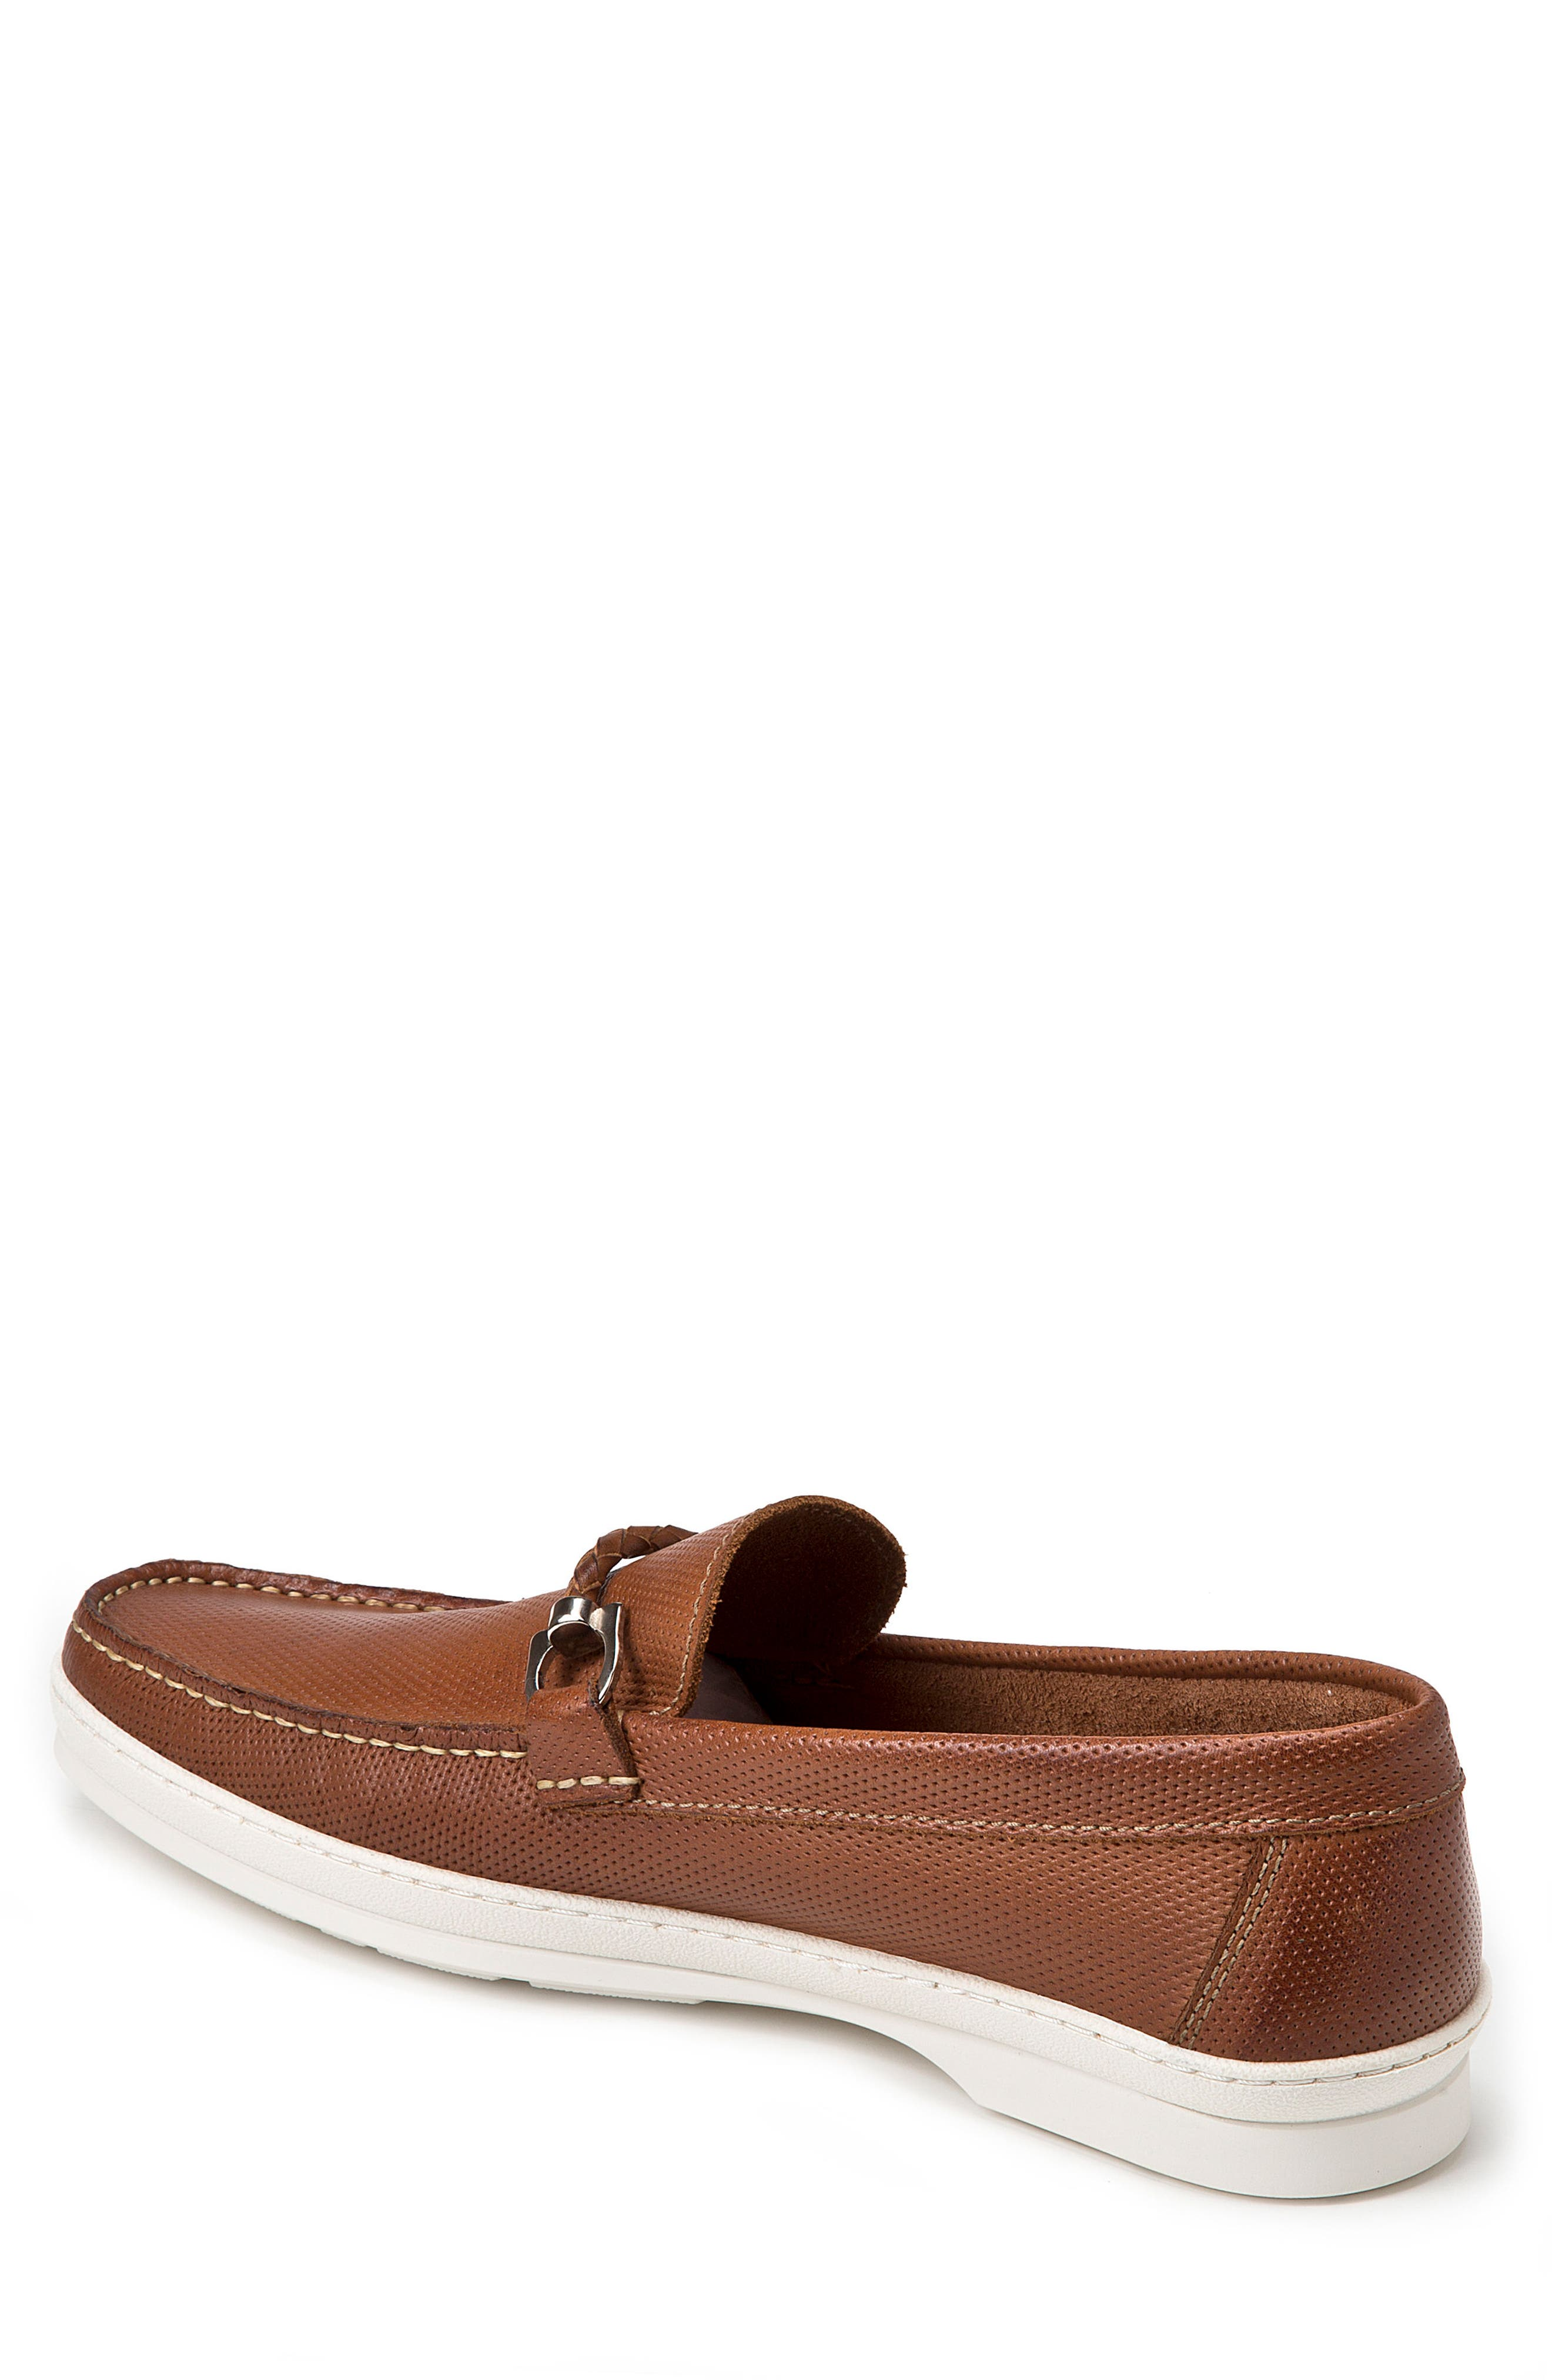 Benito Perforated Moc Toe Loafer,                             Alternate thumbnail 2, color,                             TAN LEATHER